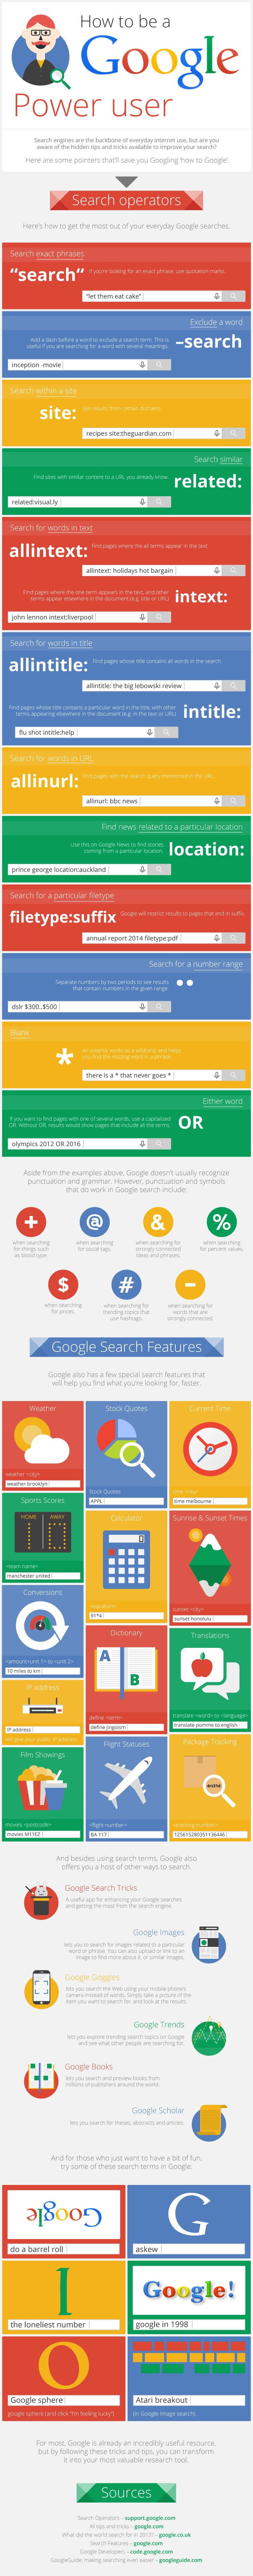 How-to-Become-a-Google-Power-User-Infographic